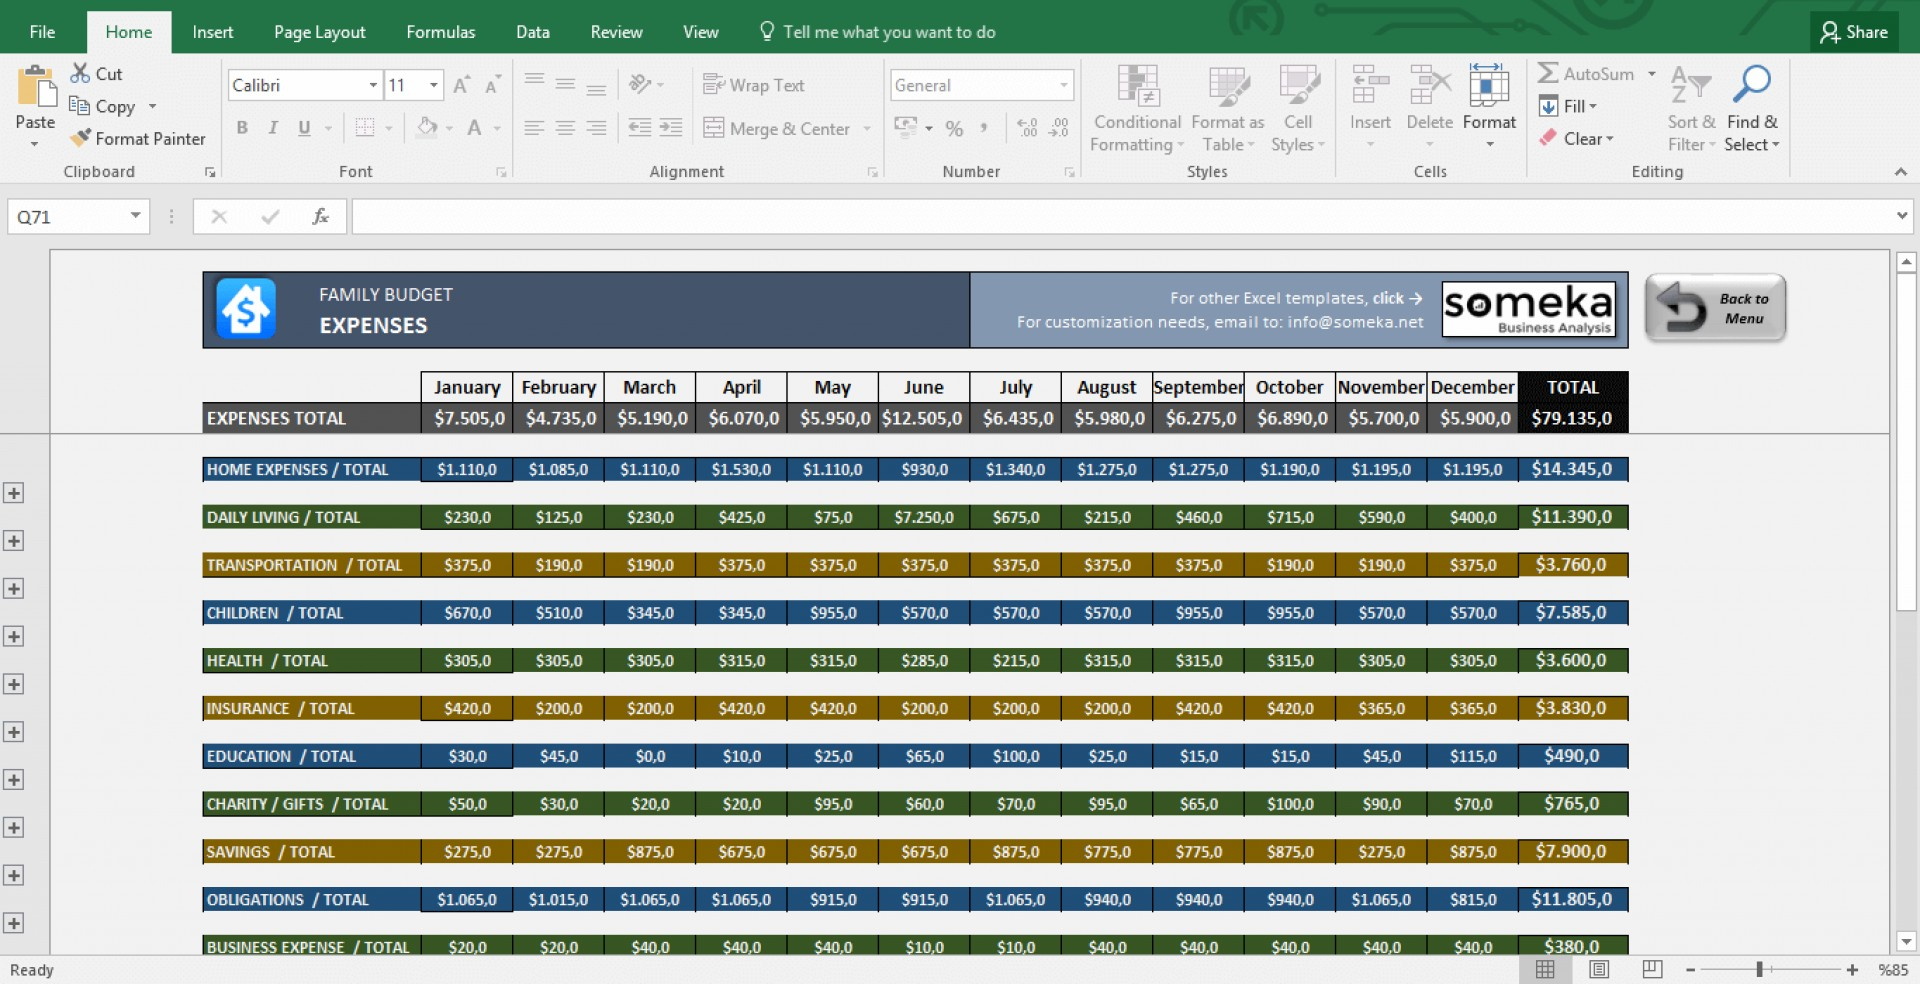 Sample Home Budget Spreadsheet With 022 Template Ideas Free Home Budget Spreadsheet Uk Personal